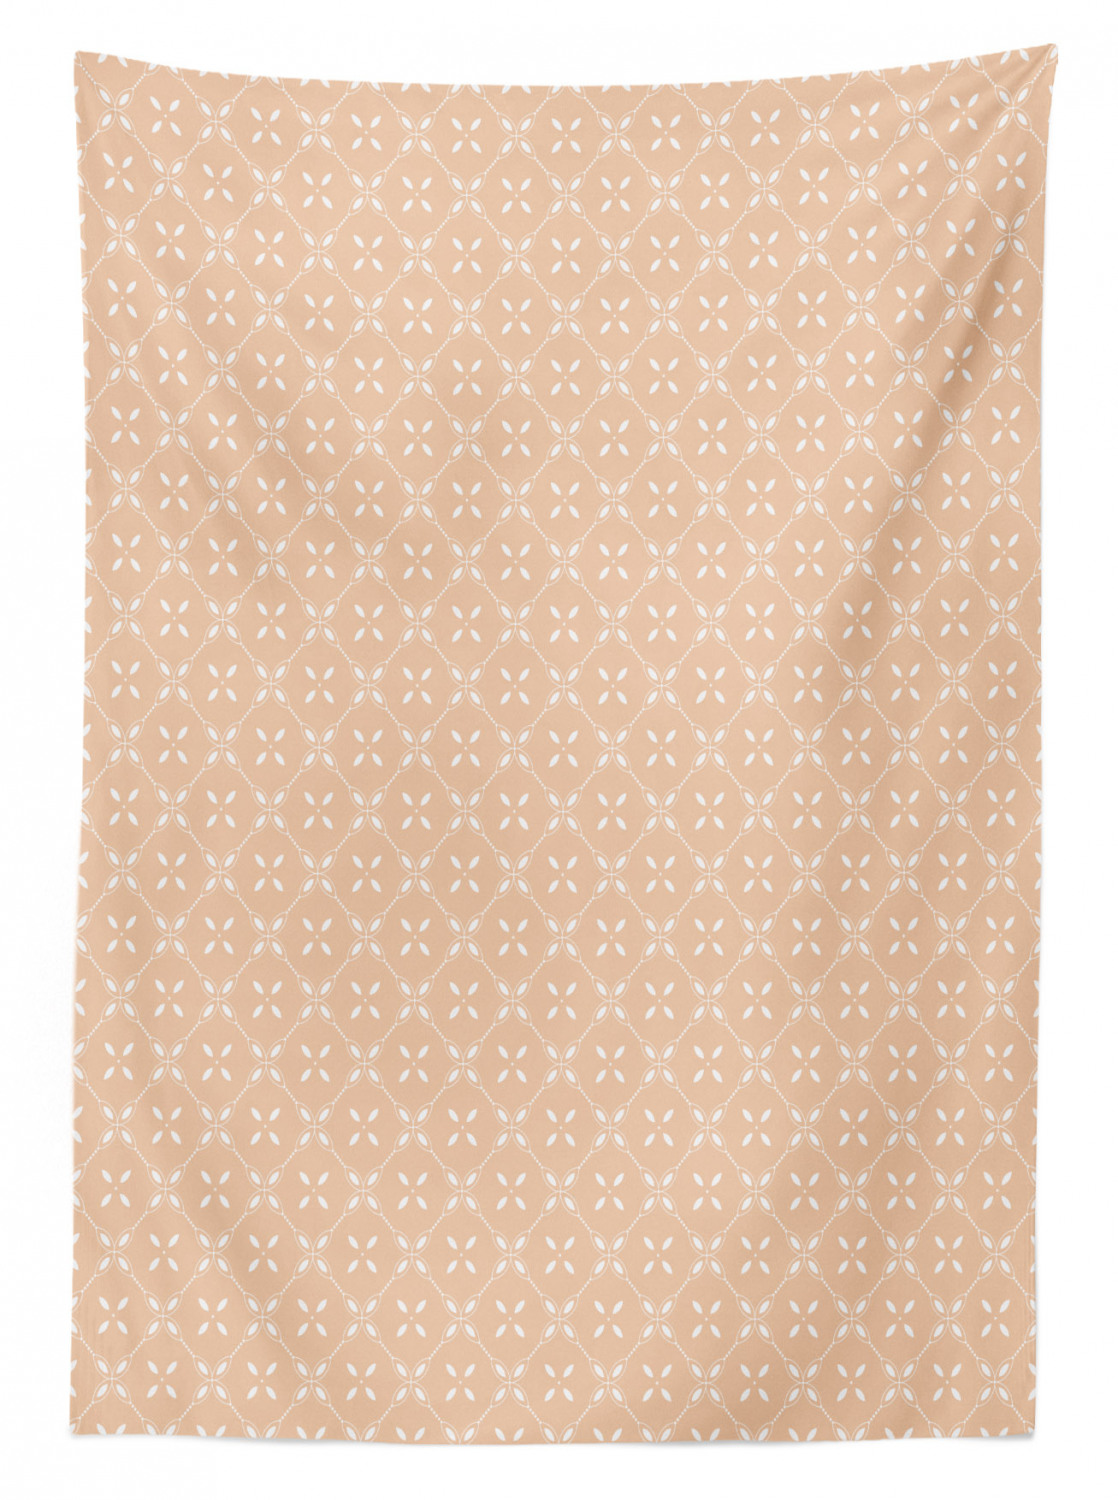 Printed Rectangular Tablecloth for Dinning Kitchen Table by Ambesonne